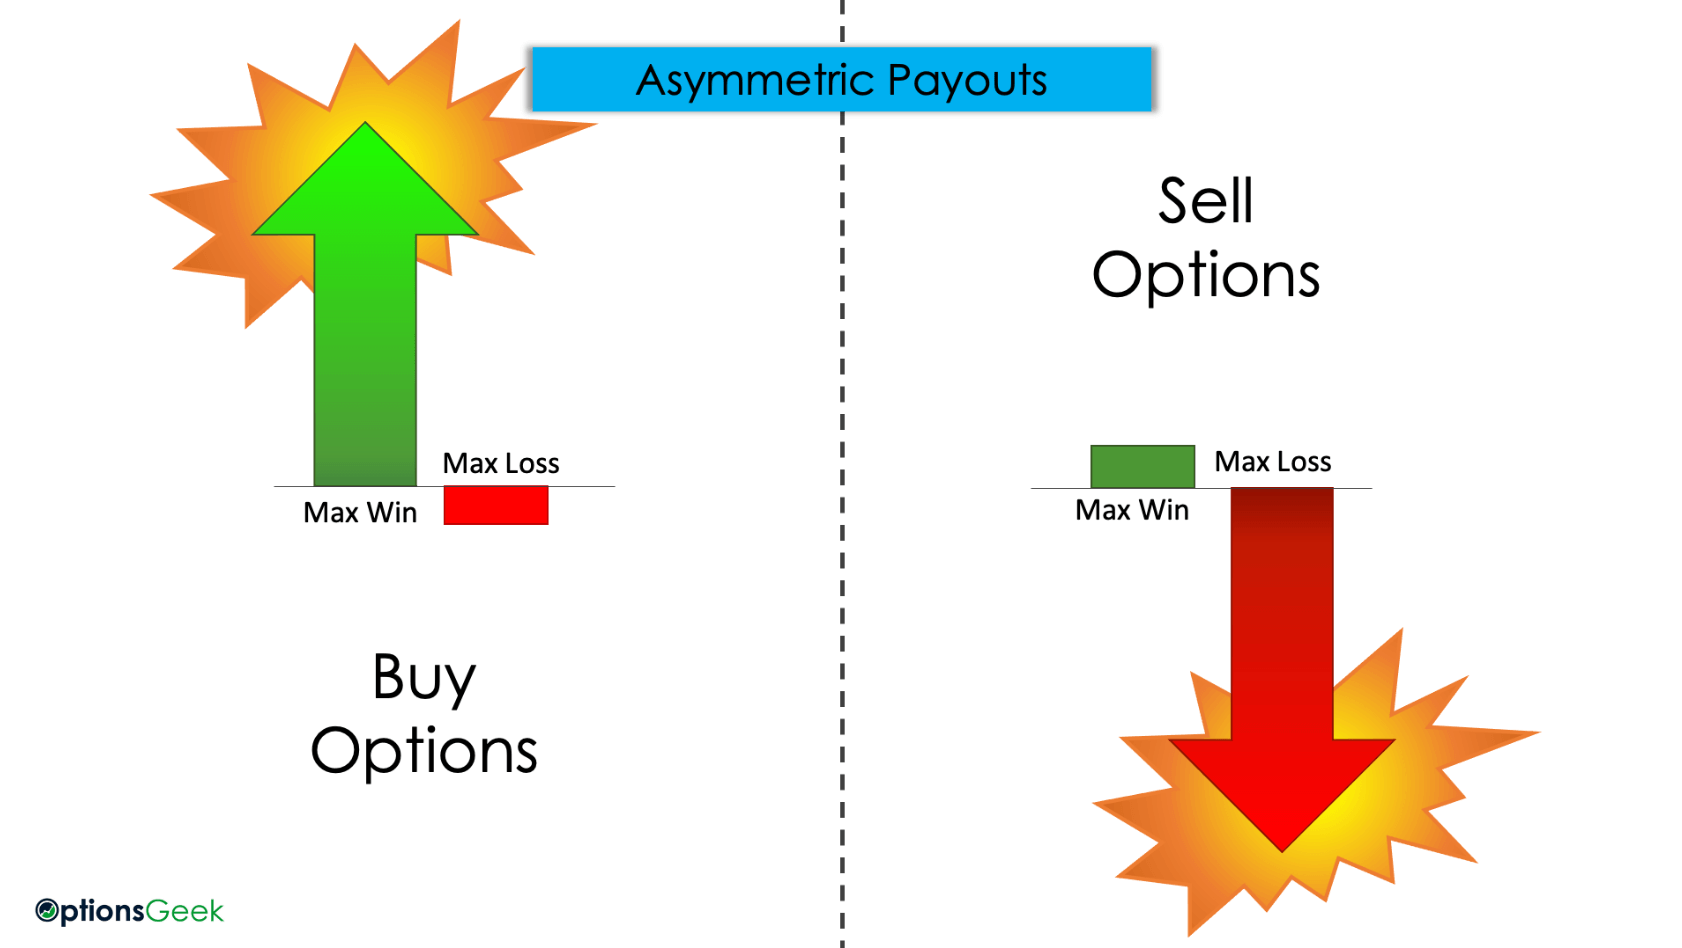 3S Asymetric Payouts